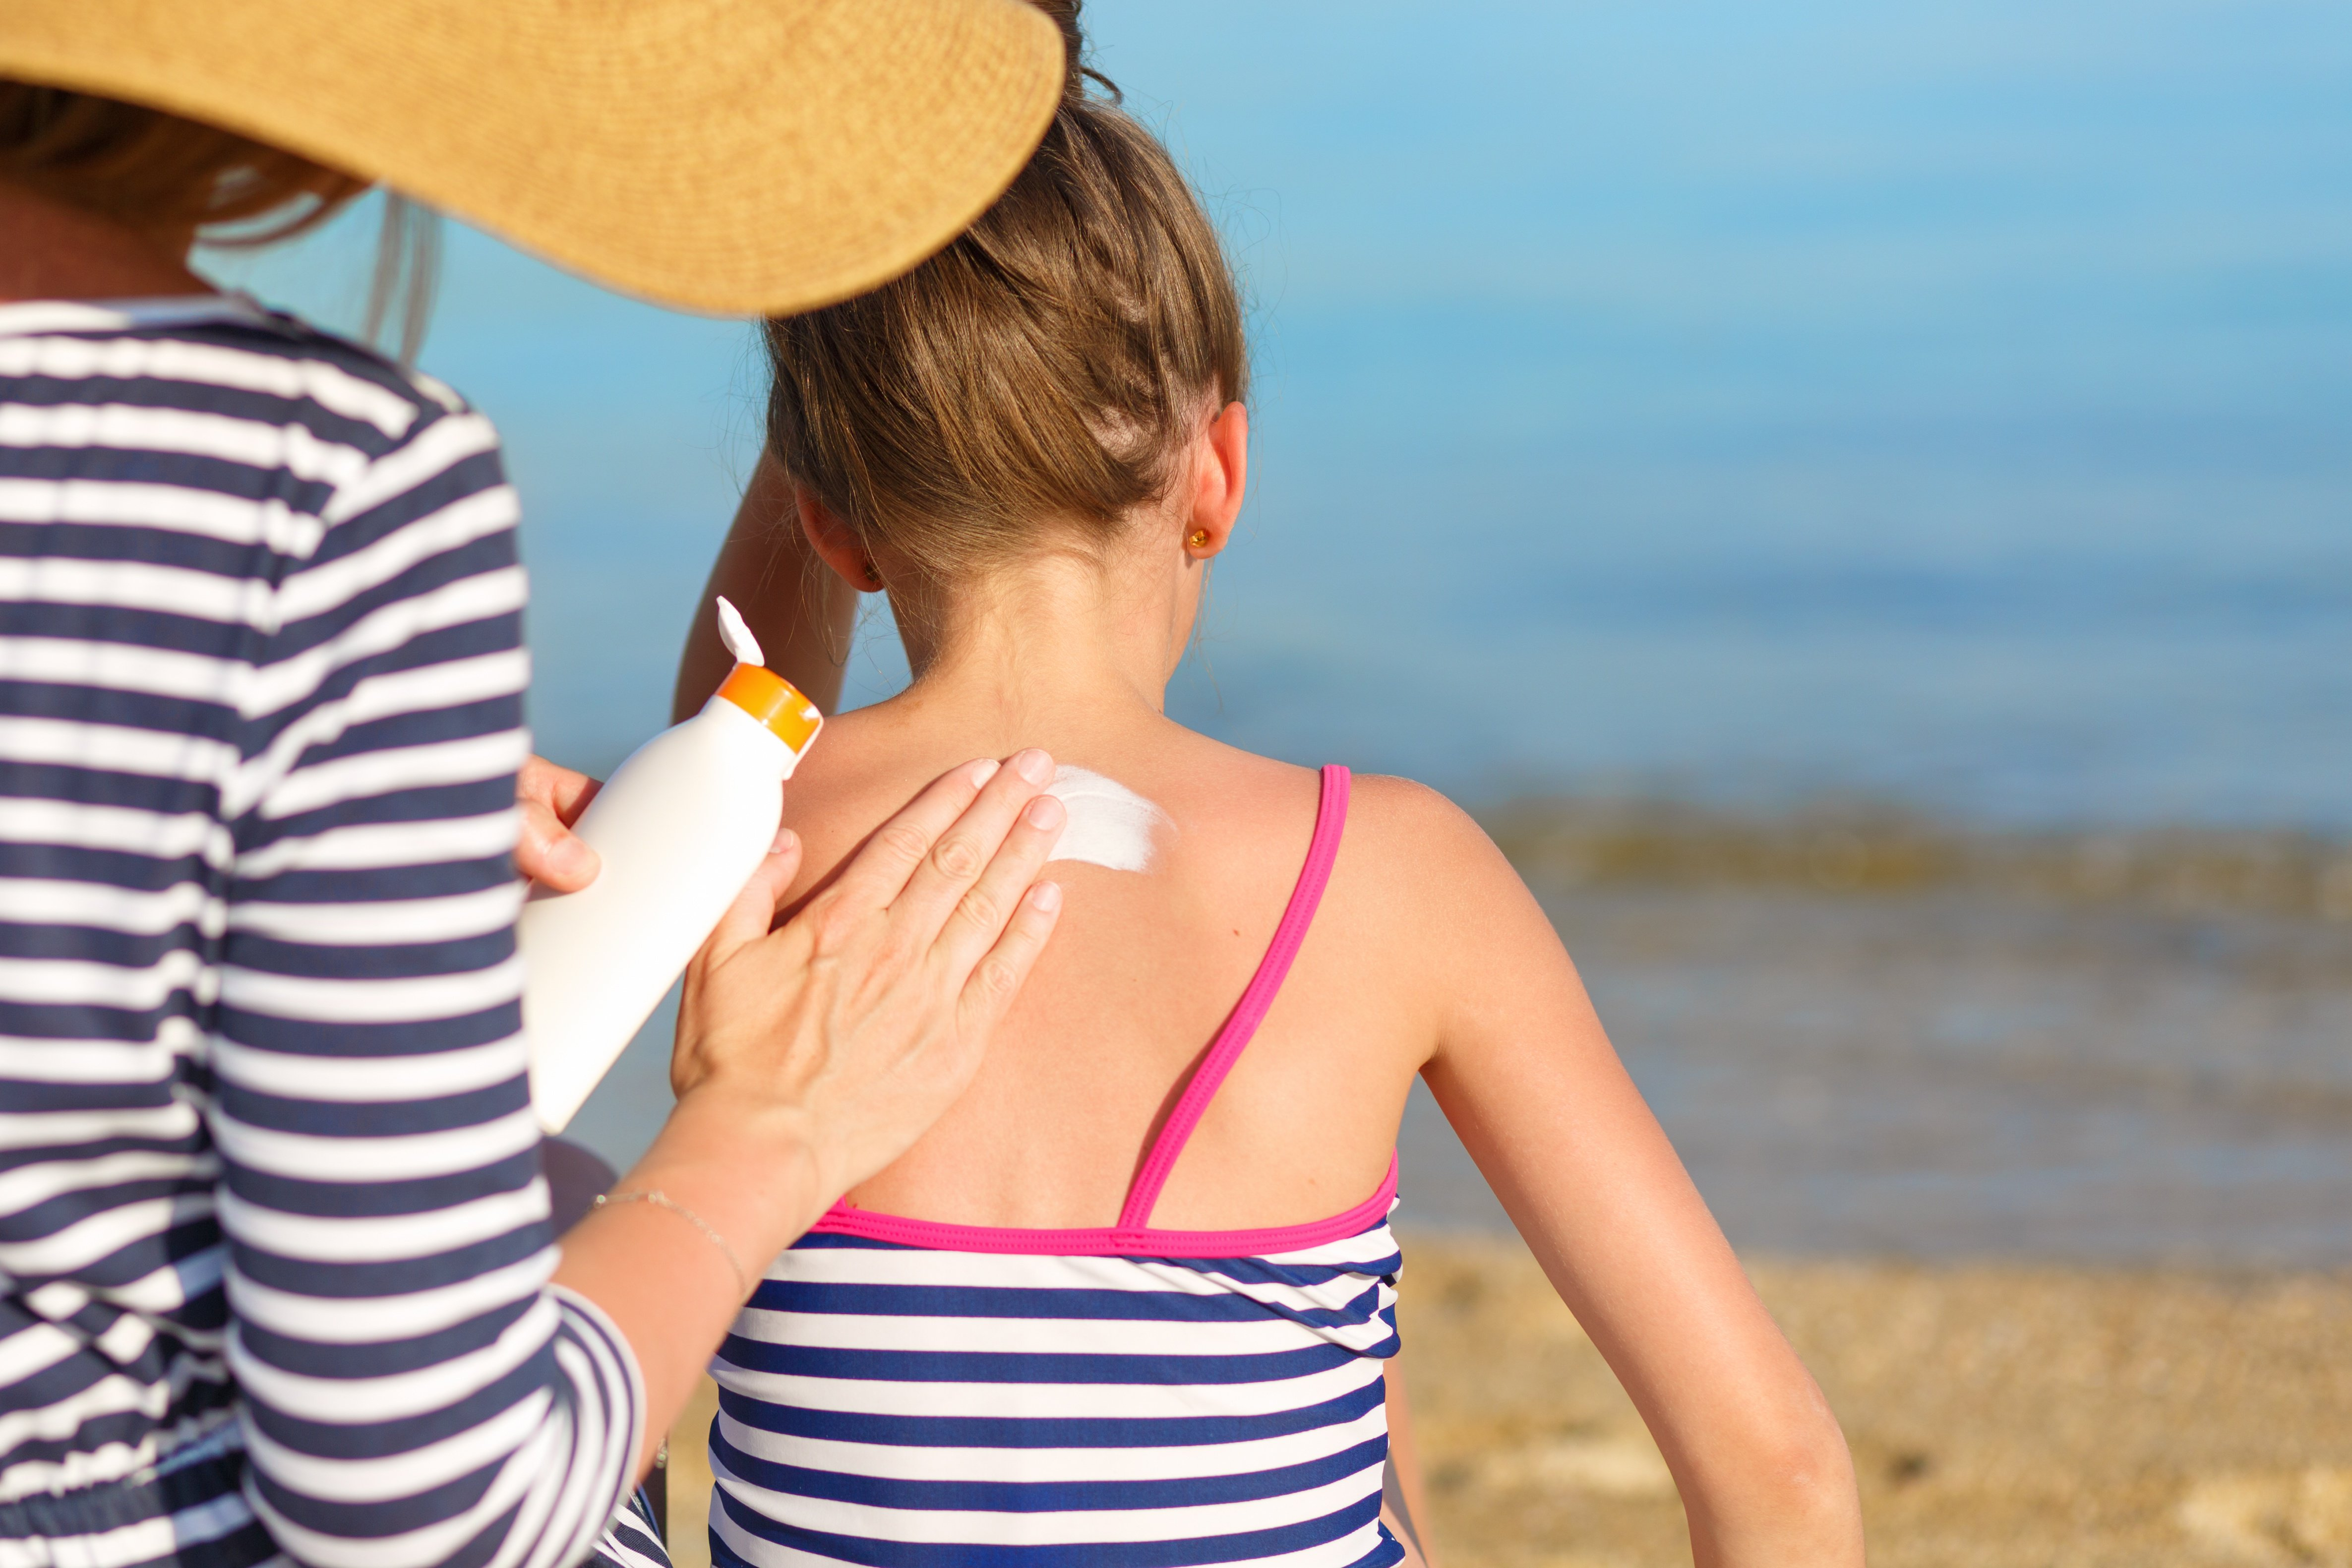 Skin Matters: The Importance of Sunscreen/Sunblock Use in the Summer